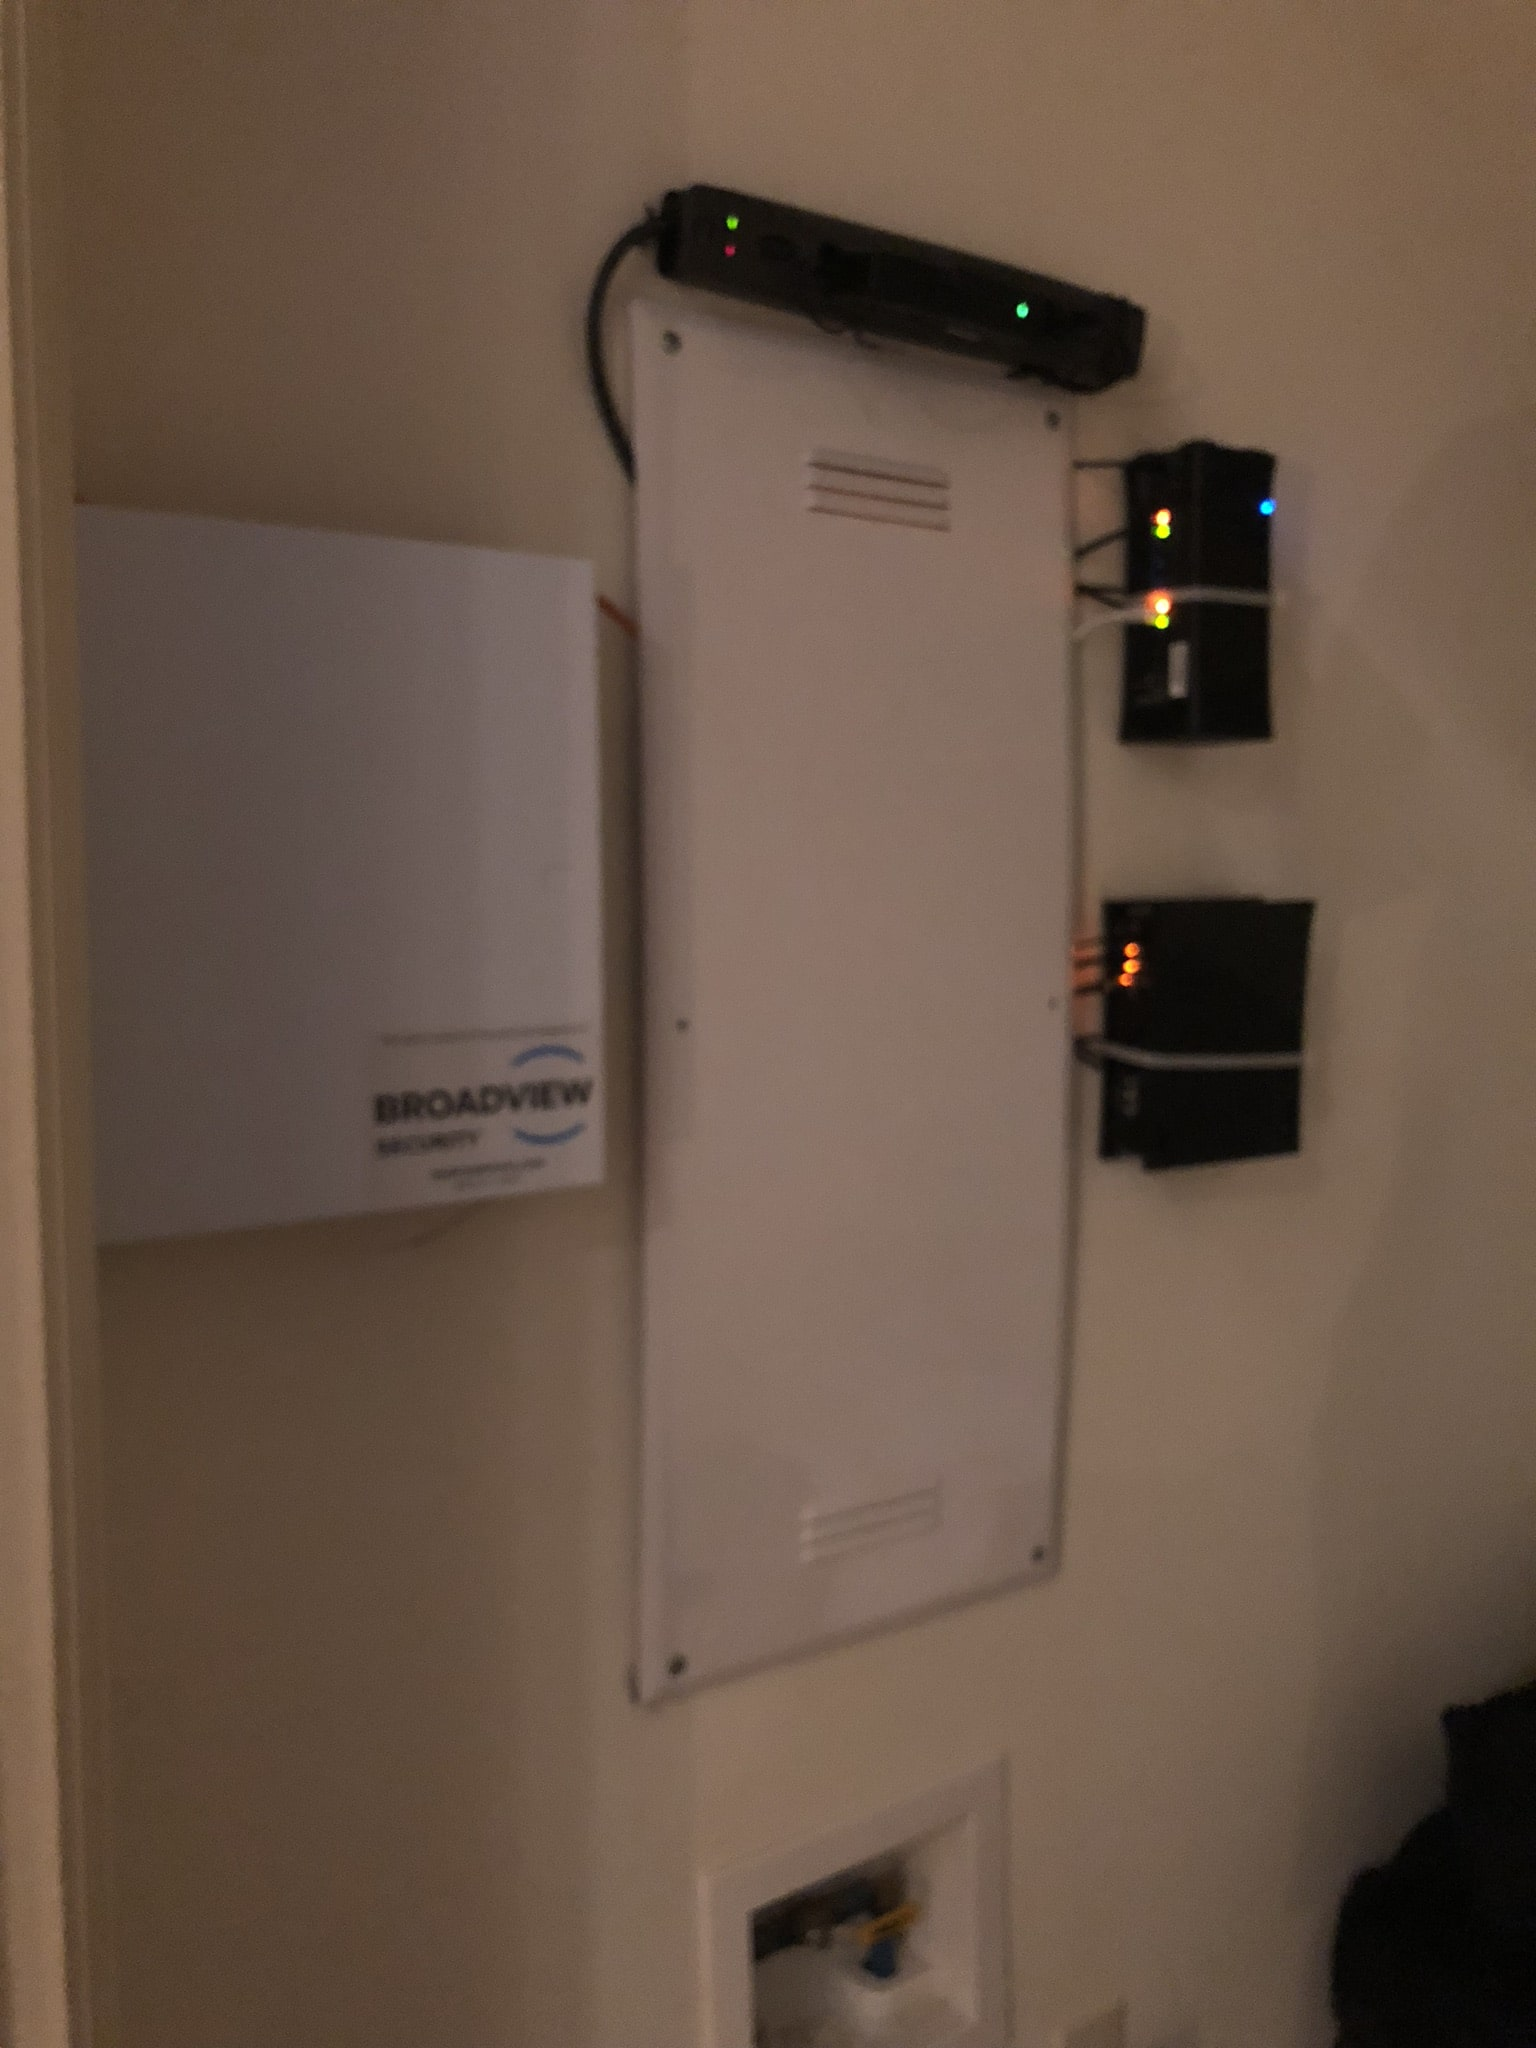 Professional Home Networking